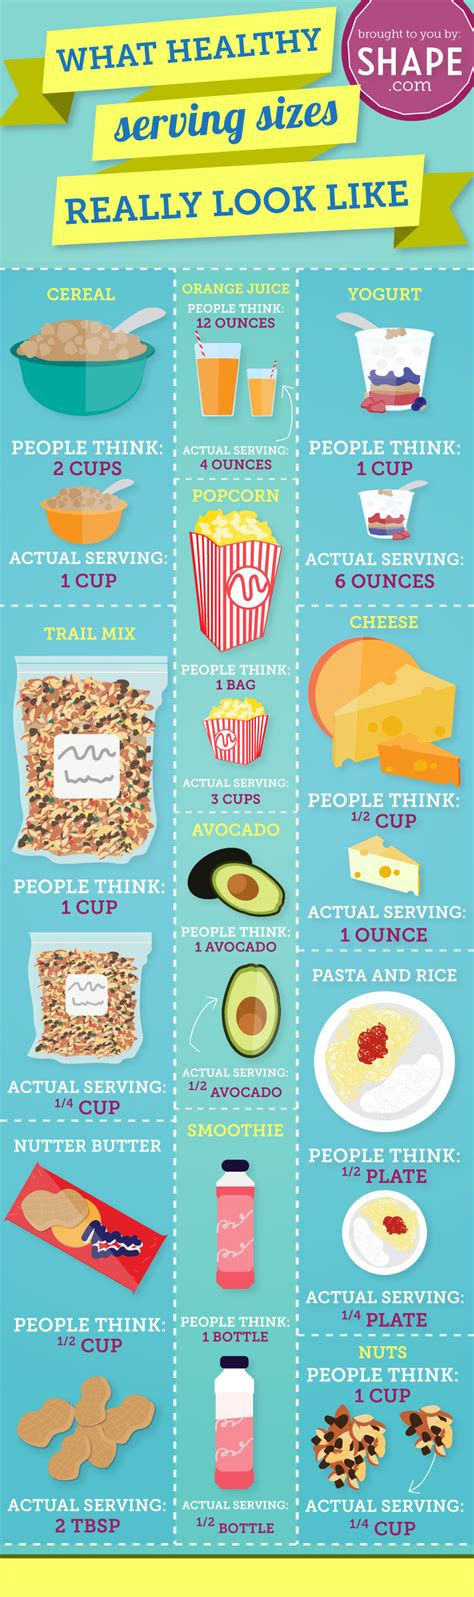 healthy fats serving size handy infographic to measure serving sizes of healthy